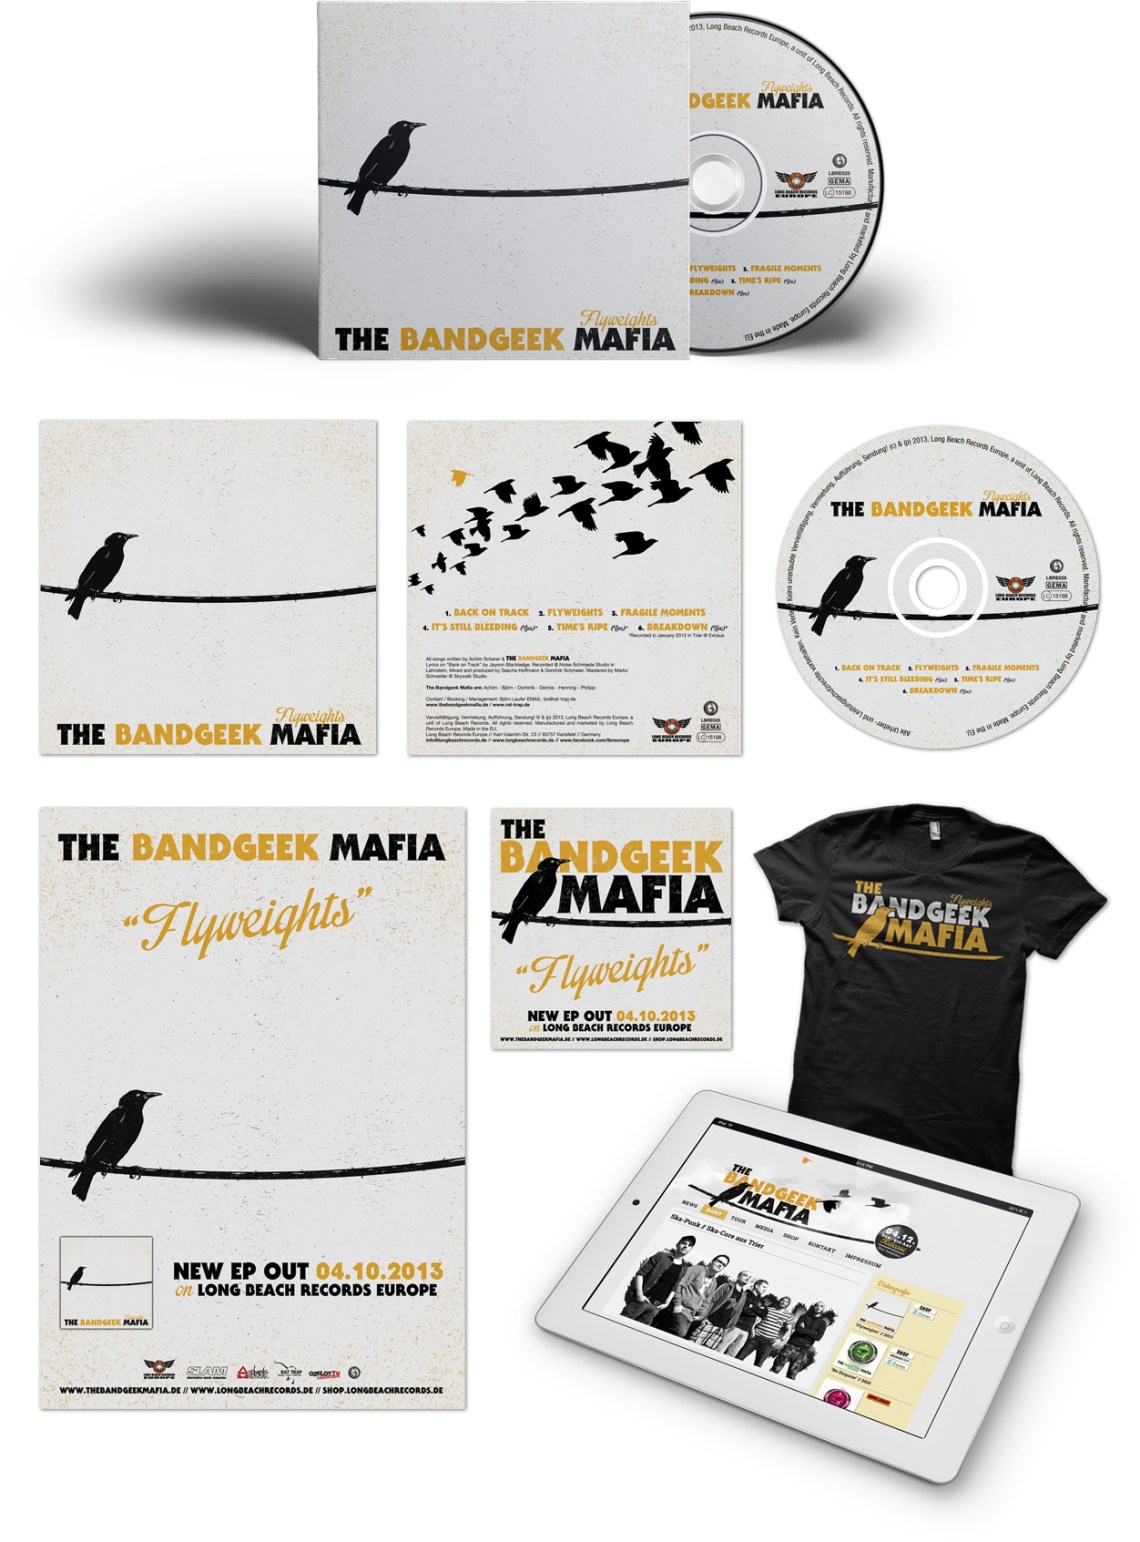 The Bandgeek Mafia, Album Artwork, CD Packaging, Graphic Design, Punk Rock, Ska, Germany, Long Beach Records, Illustration, Toronto, Art, Music, Packaging